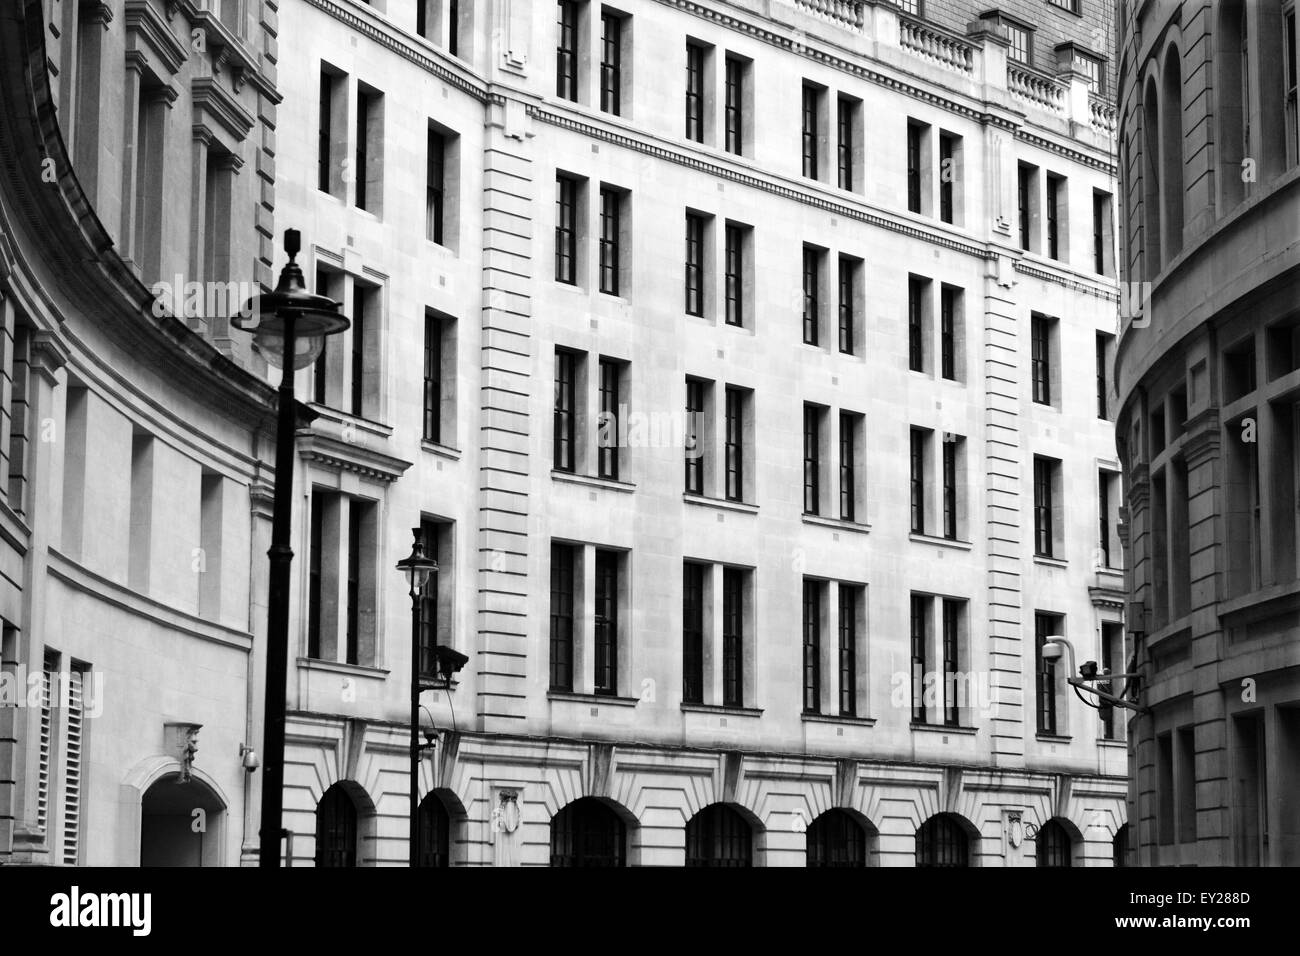 Scotland Yard Black and White Stock Photos & Images - Alamy